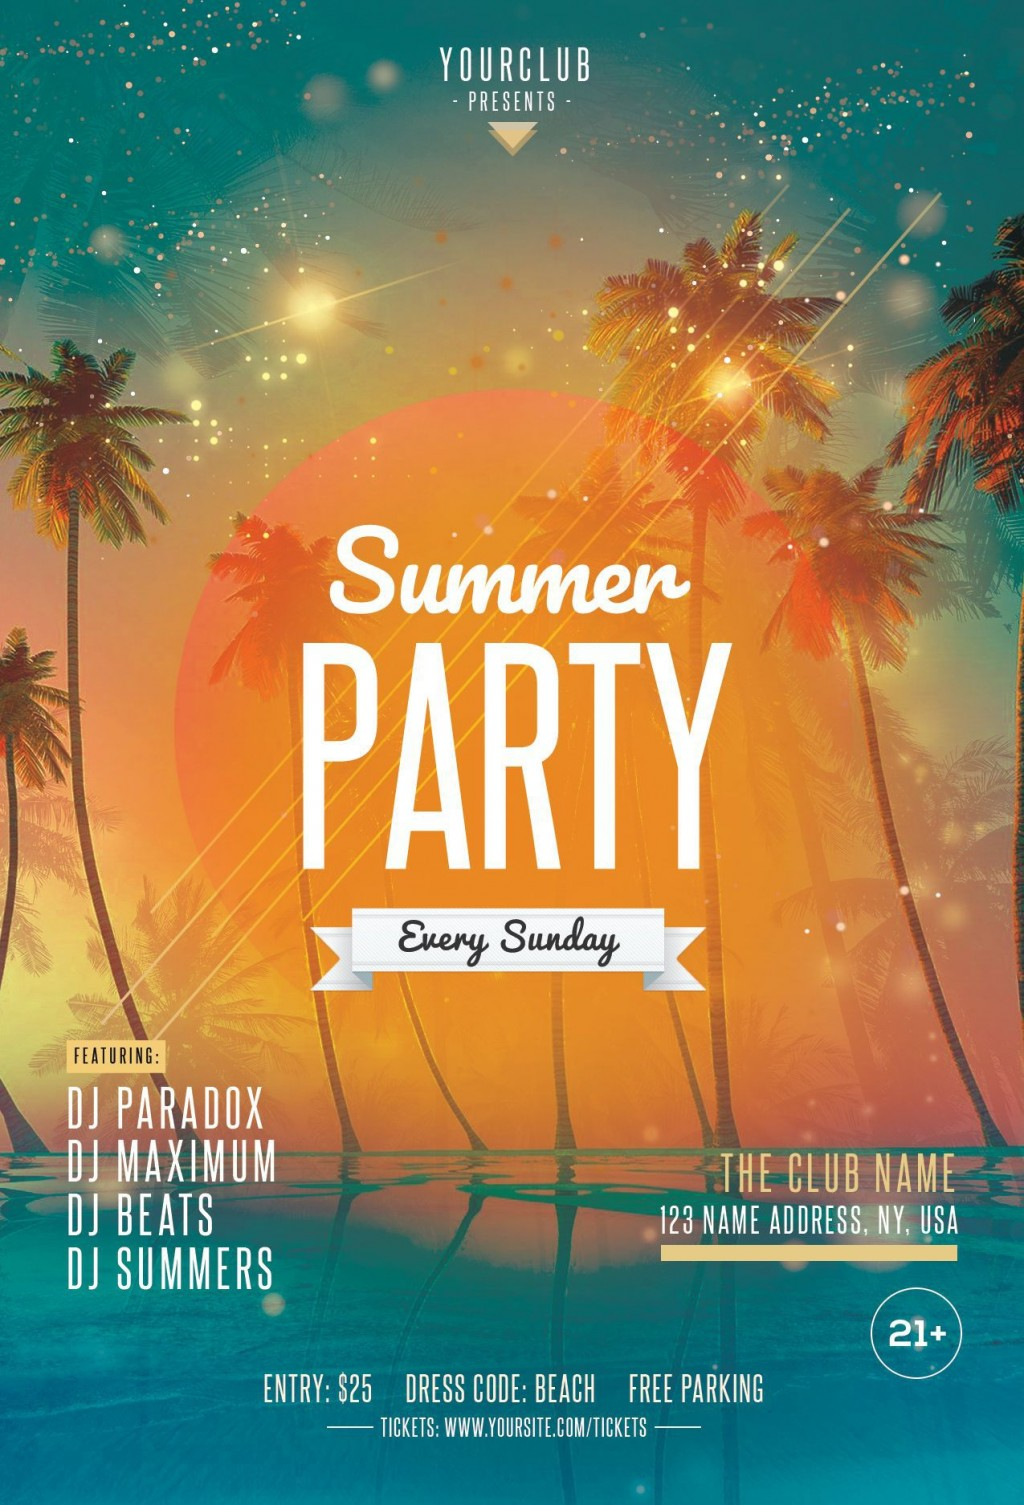 000 Surprising Free Party Flyer Psd Template Download High Resolution  - Neon GlowLarge